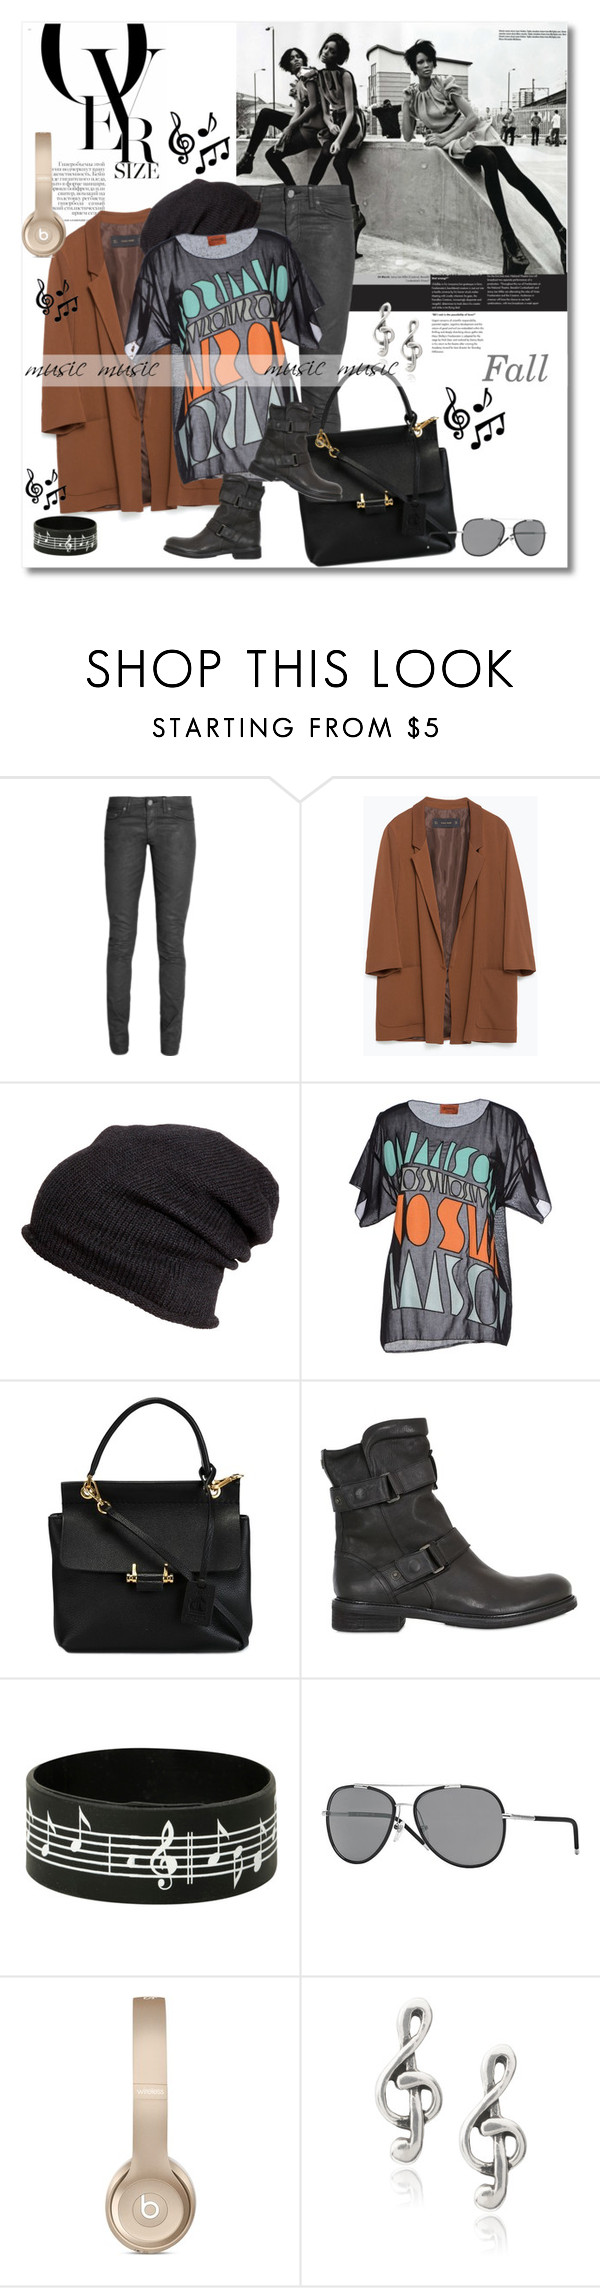 look the day by vkmd on Polyvore featuring Missoni, Zara, Acne Studios, Lanvin, Journee Collection, H&M, Burberry and Matchless